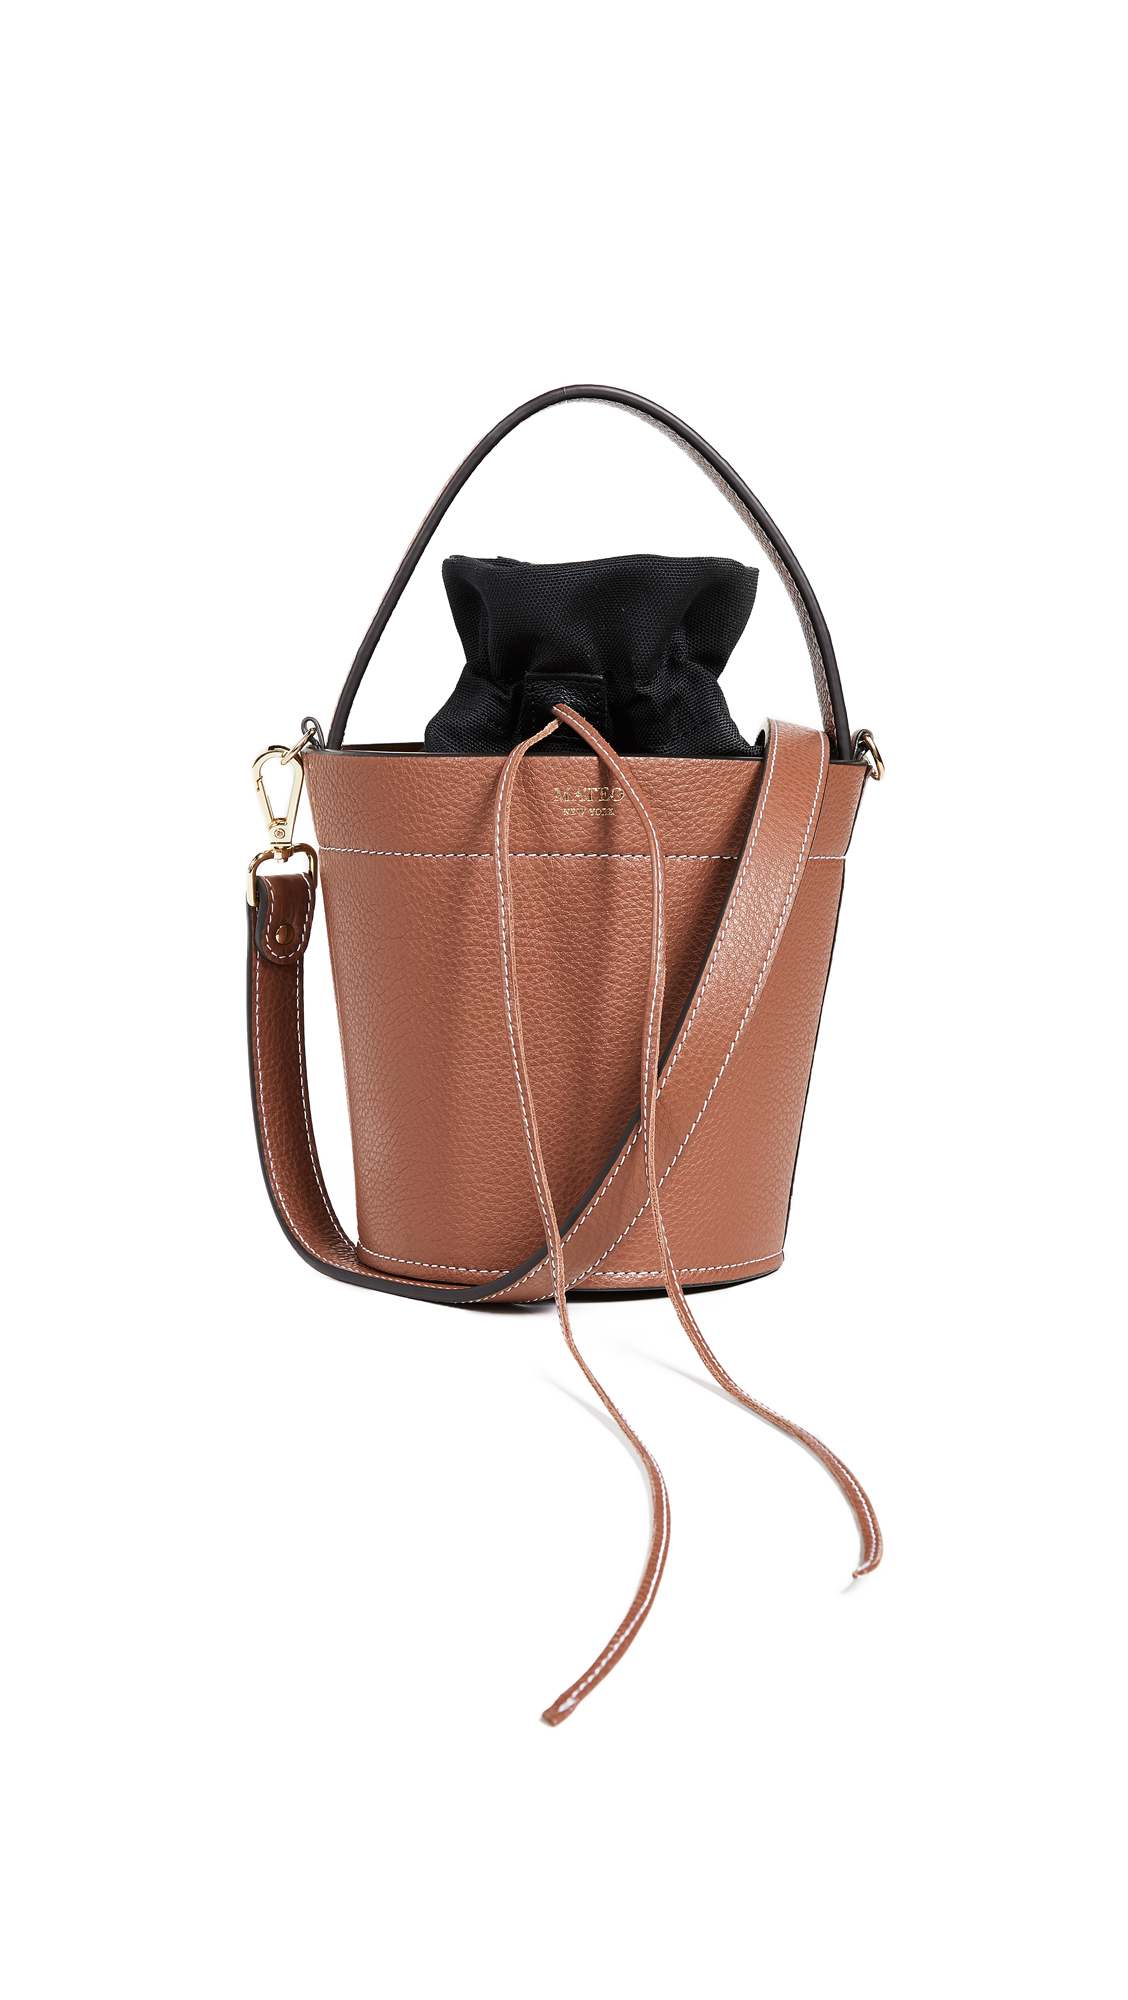 MATEO THE MADELINE BUCKET BAG